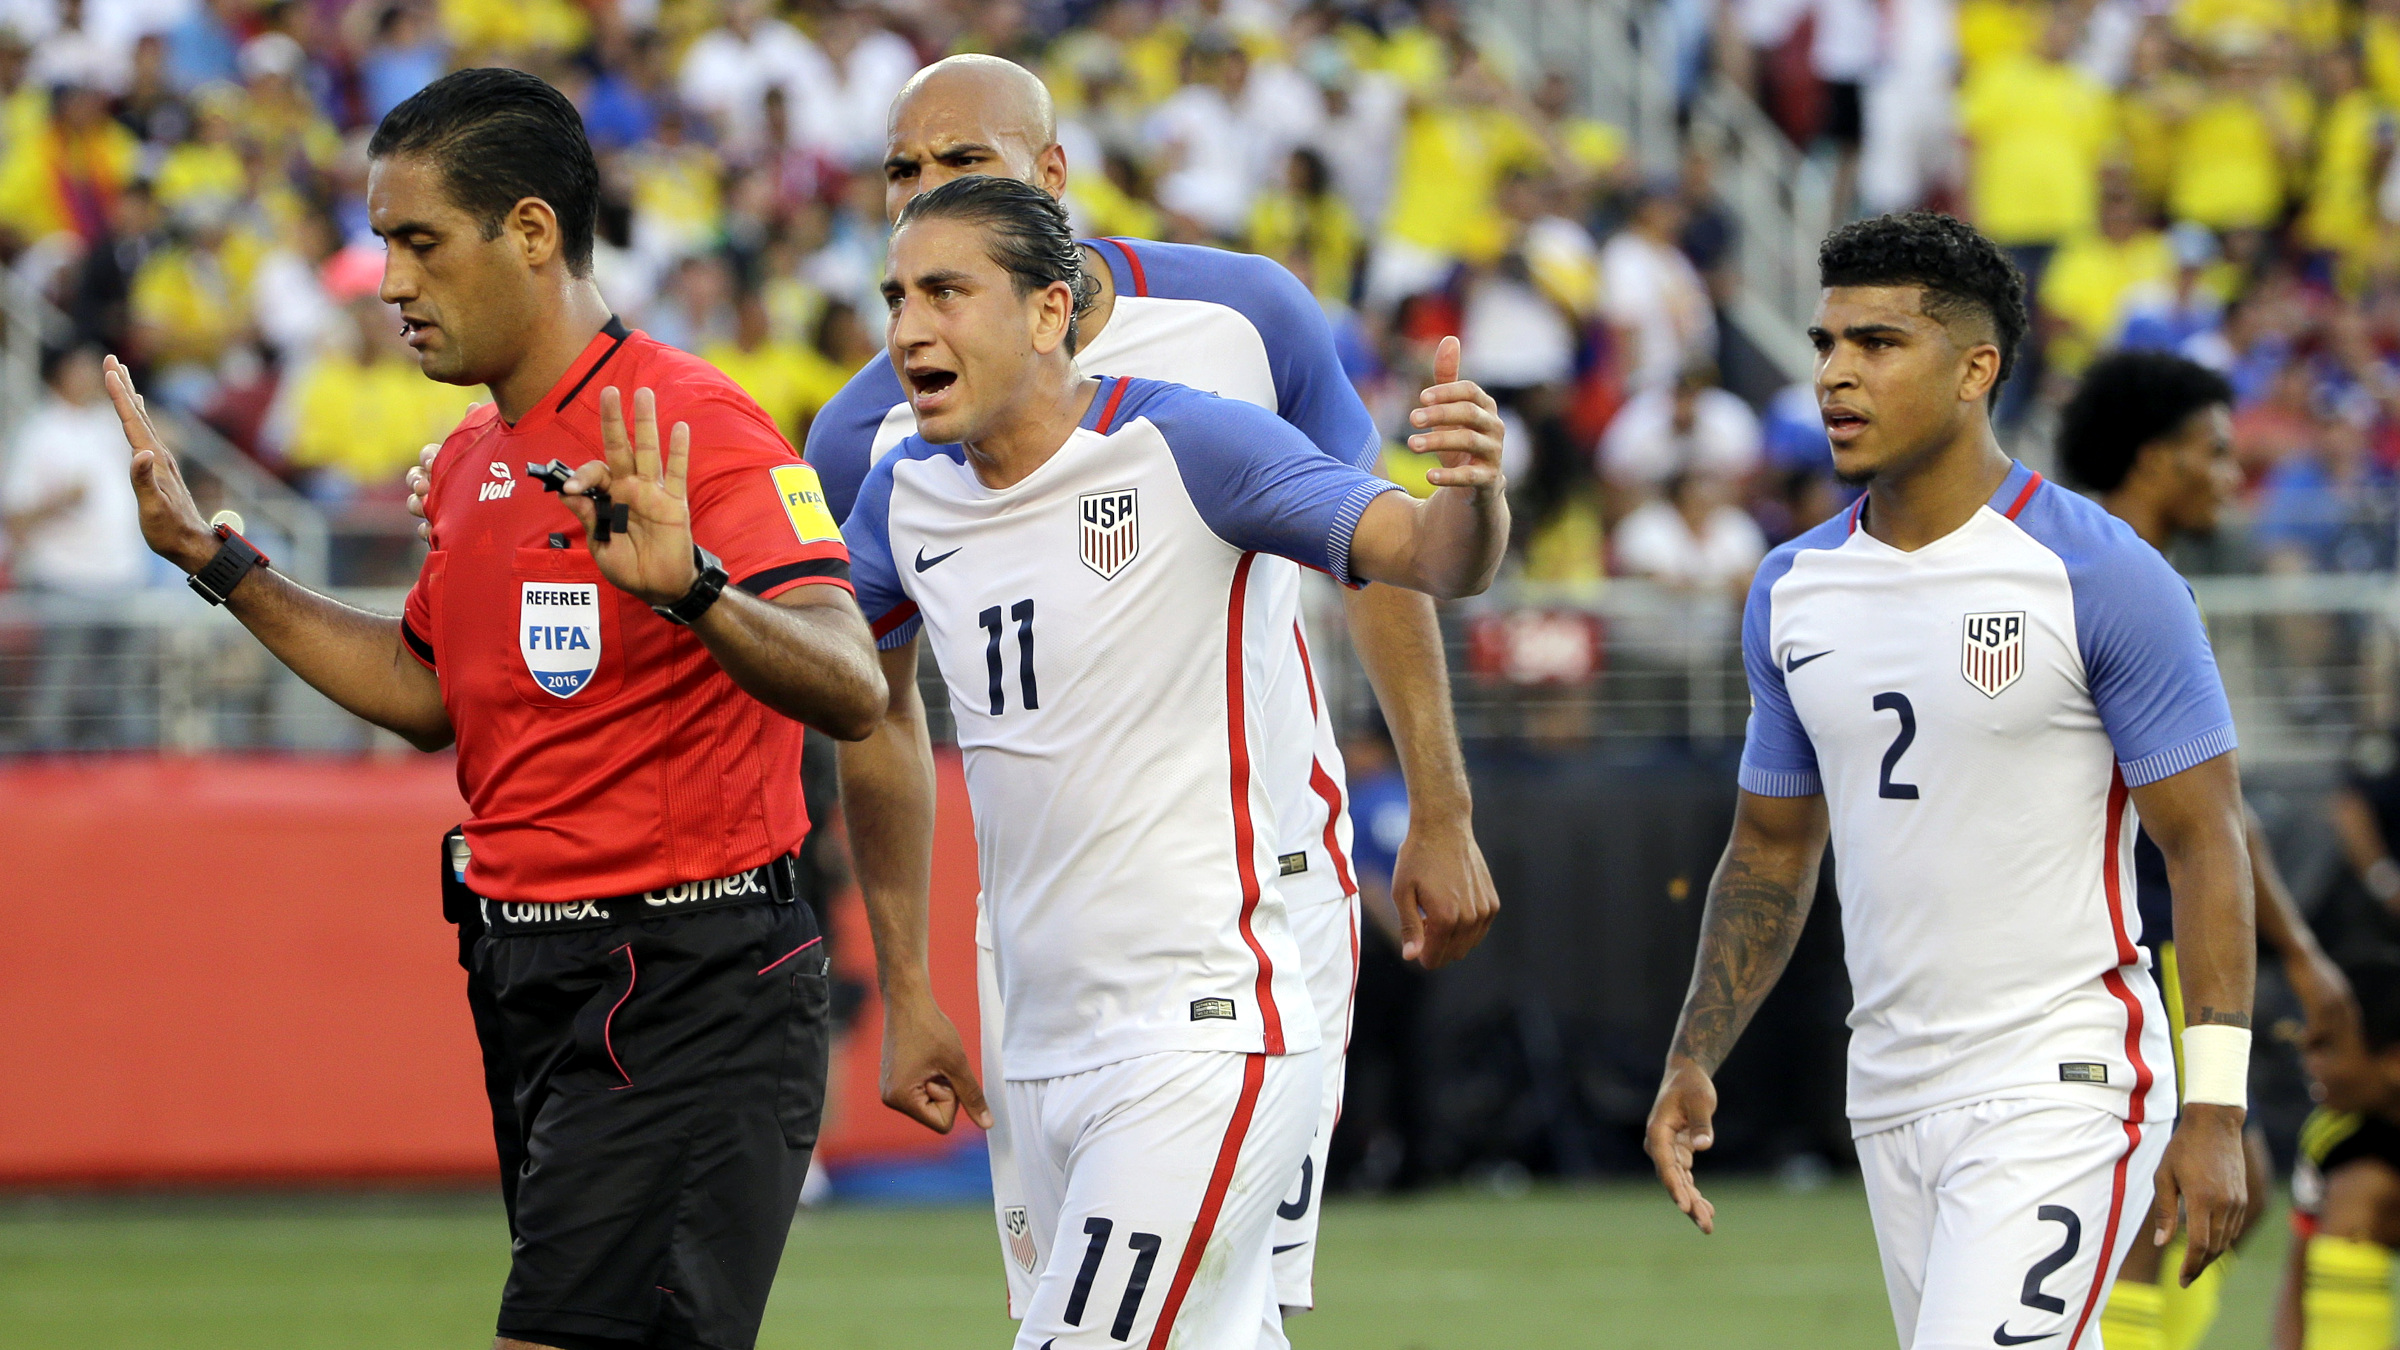 Alejandro Bedoya of the United States argues with referee Roberto García Orozco, after he awarded a penalty to Colombia during the opening match of the Copa America Centenario at Levi's Stadium in Santa Clara, Calif., Friday, June 3, 2016.